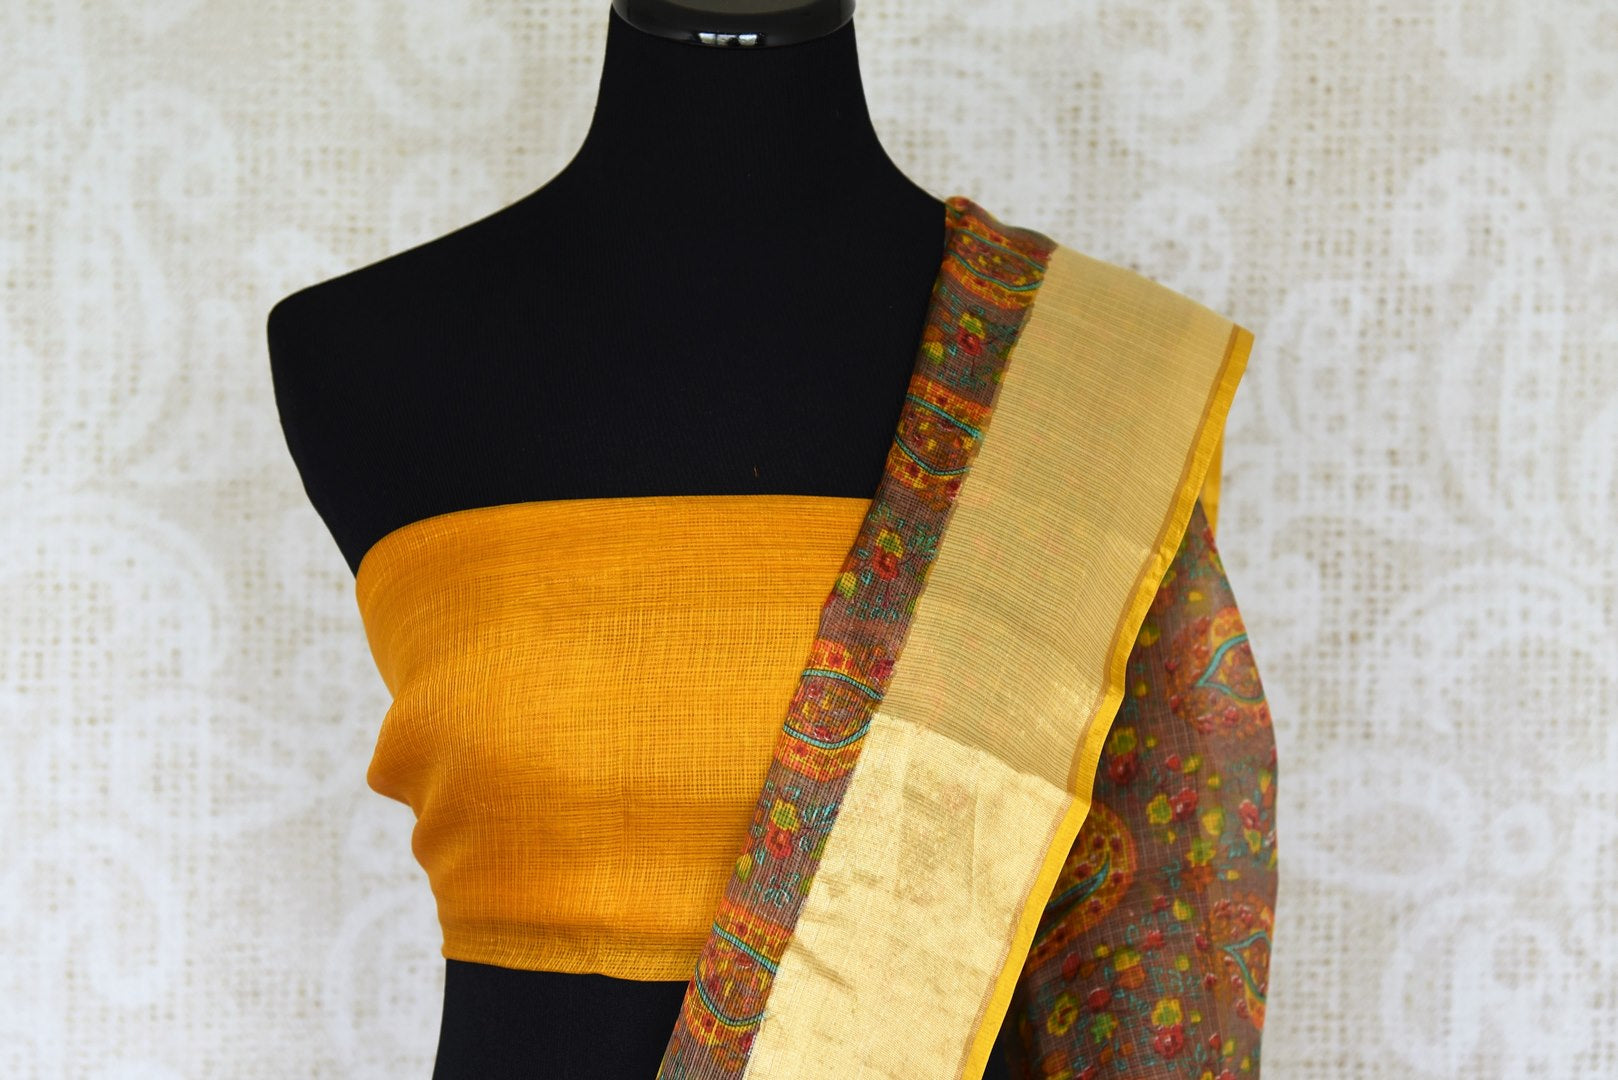 Invest in handcrafted authentic zari kota silk traditional sari this season to look your best. This yellow colored traditional saree with handprinted motifs and zari border is every woman's must-have. Shop designer silk sarees, kanjeevaram silk sarees, handloom saris online or visit Pure Elegance store in USA.-blouse pallu